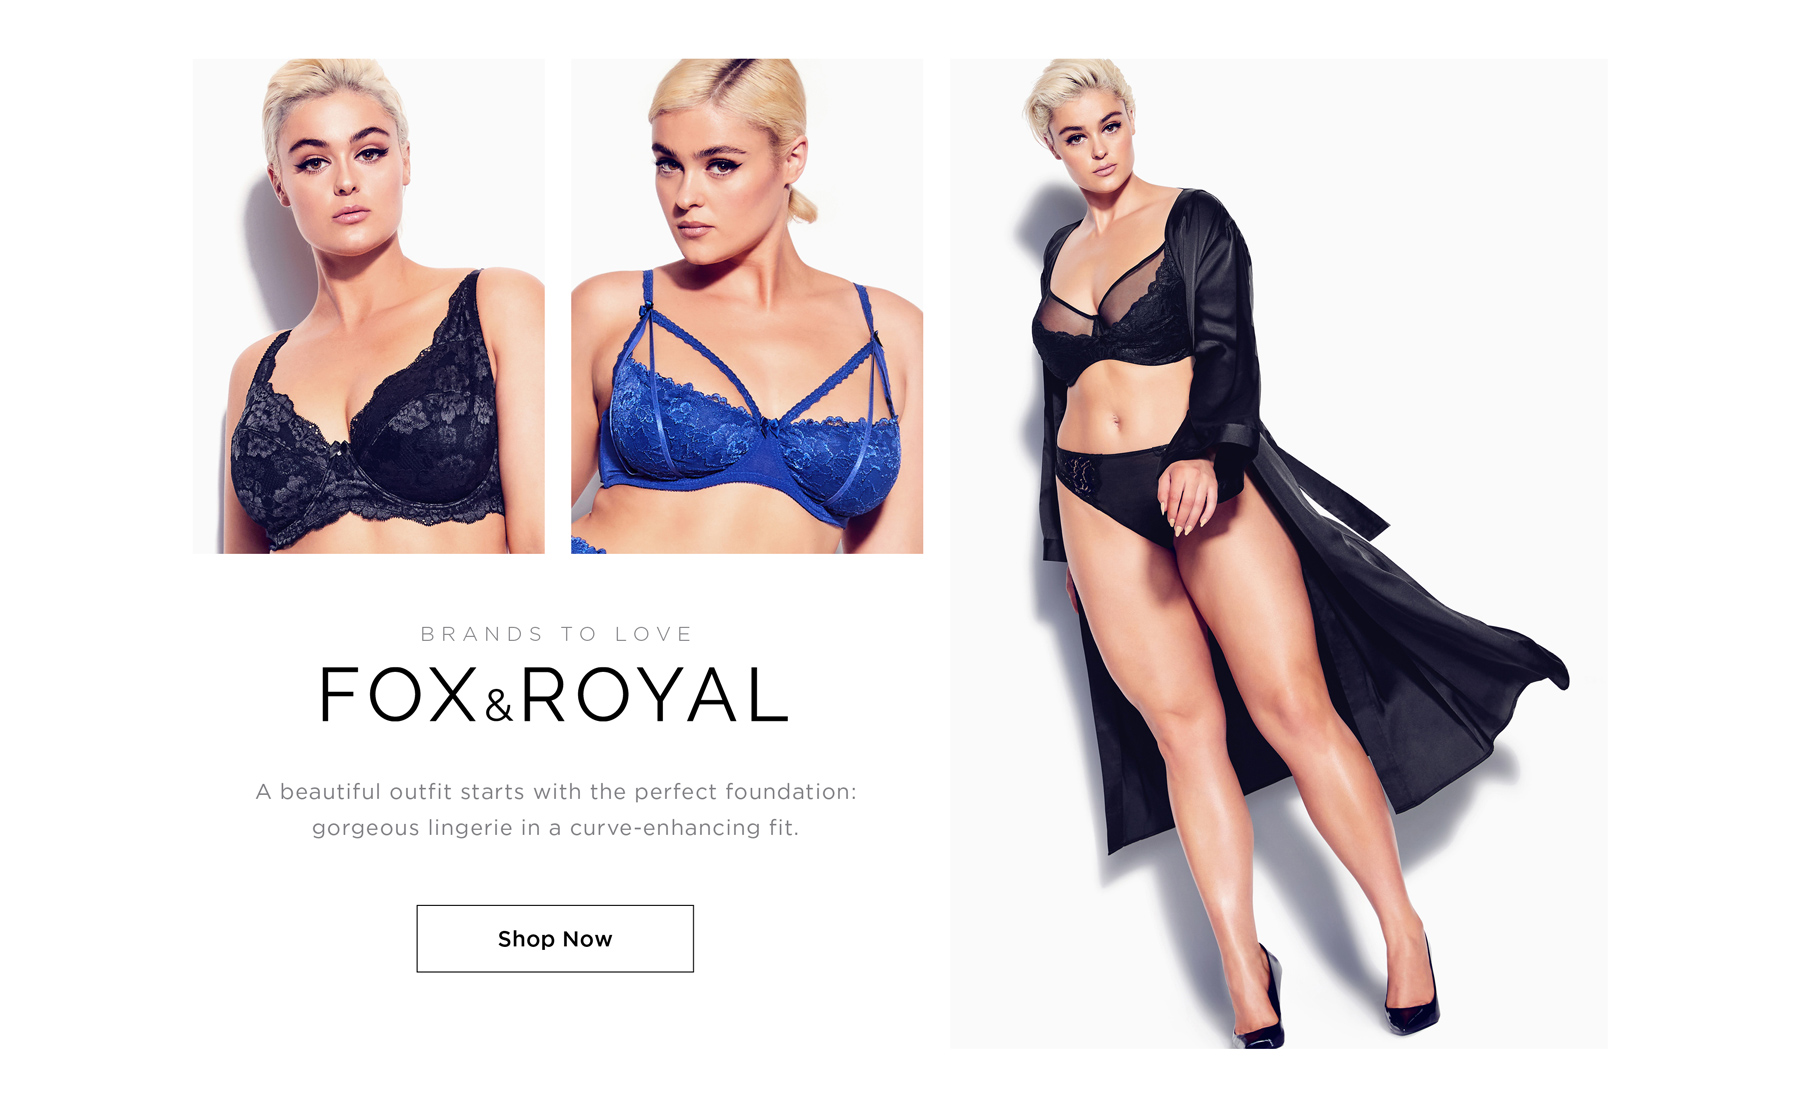 BRANDS TO LOVE: FOX & ROYAL - Your favorite outfit starts with the perfect foundation: gorgeous lingerie in a curve-enhancing fit - SHOP NOW